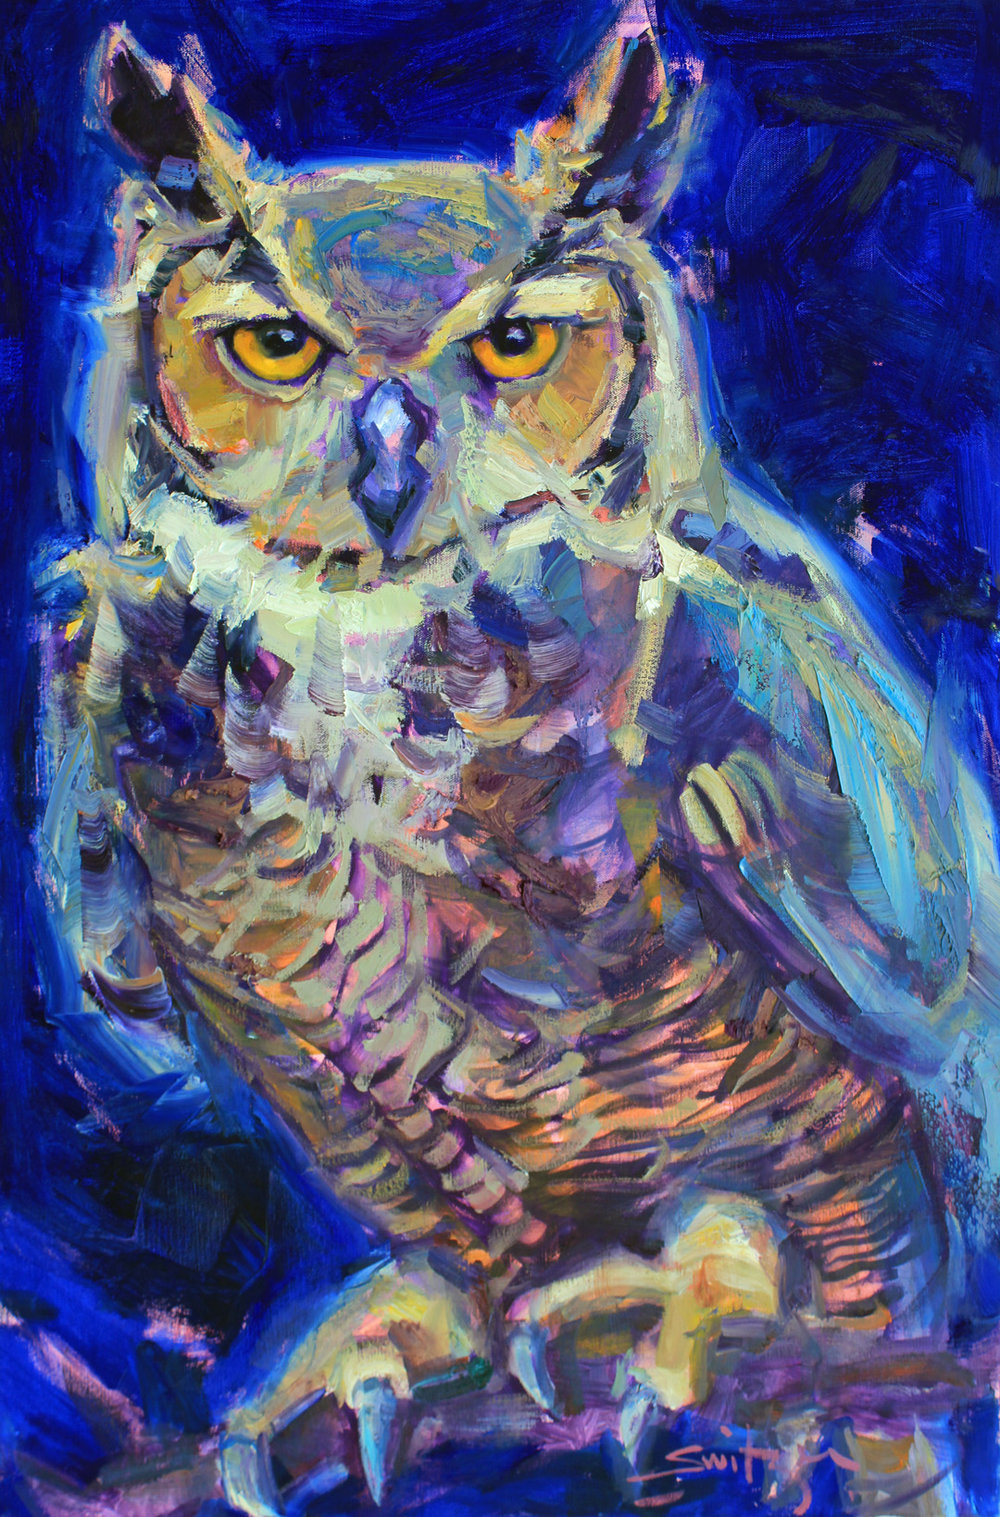 """Guardian"", 36x24 inches, oil on canvas, SOLD"